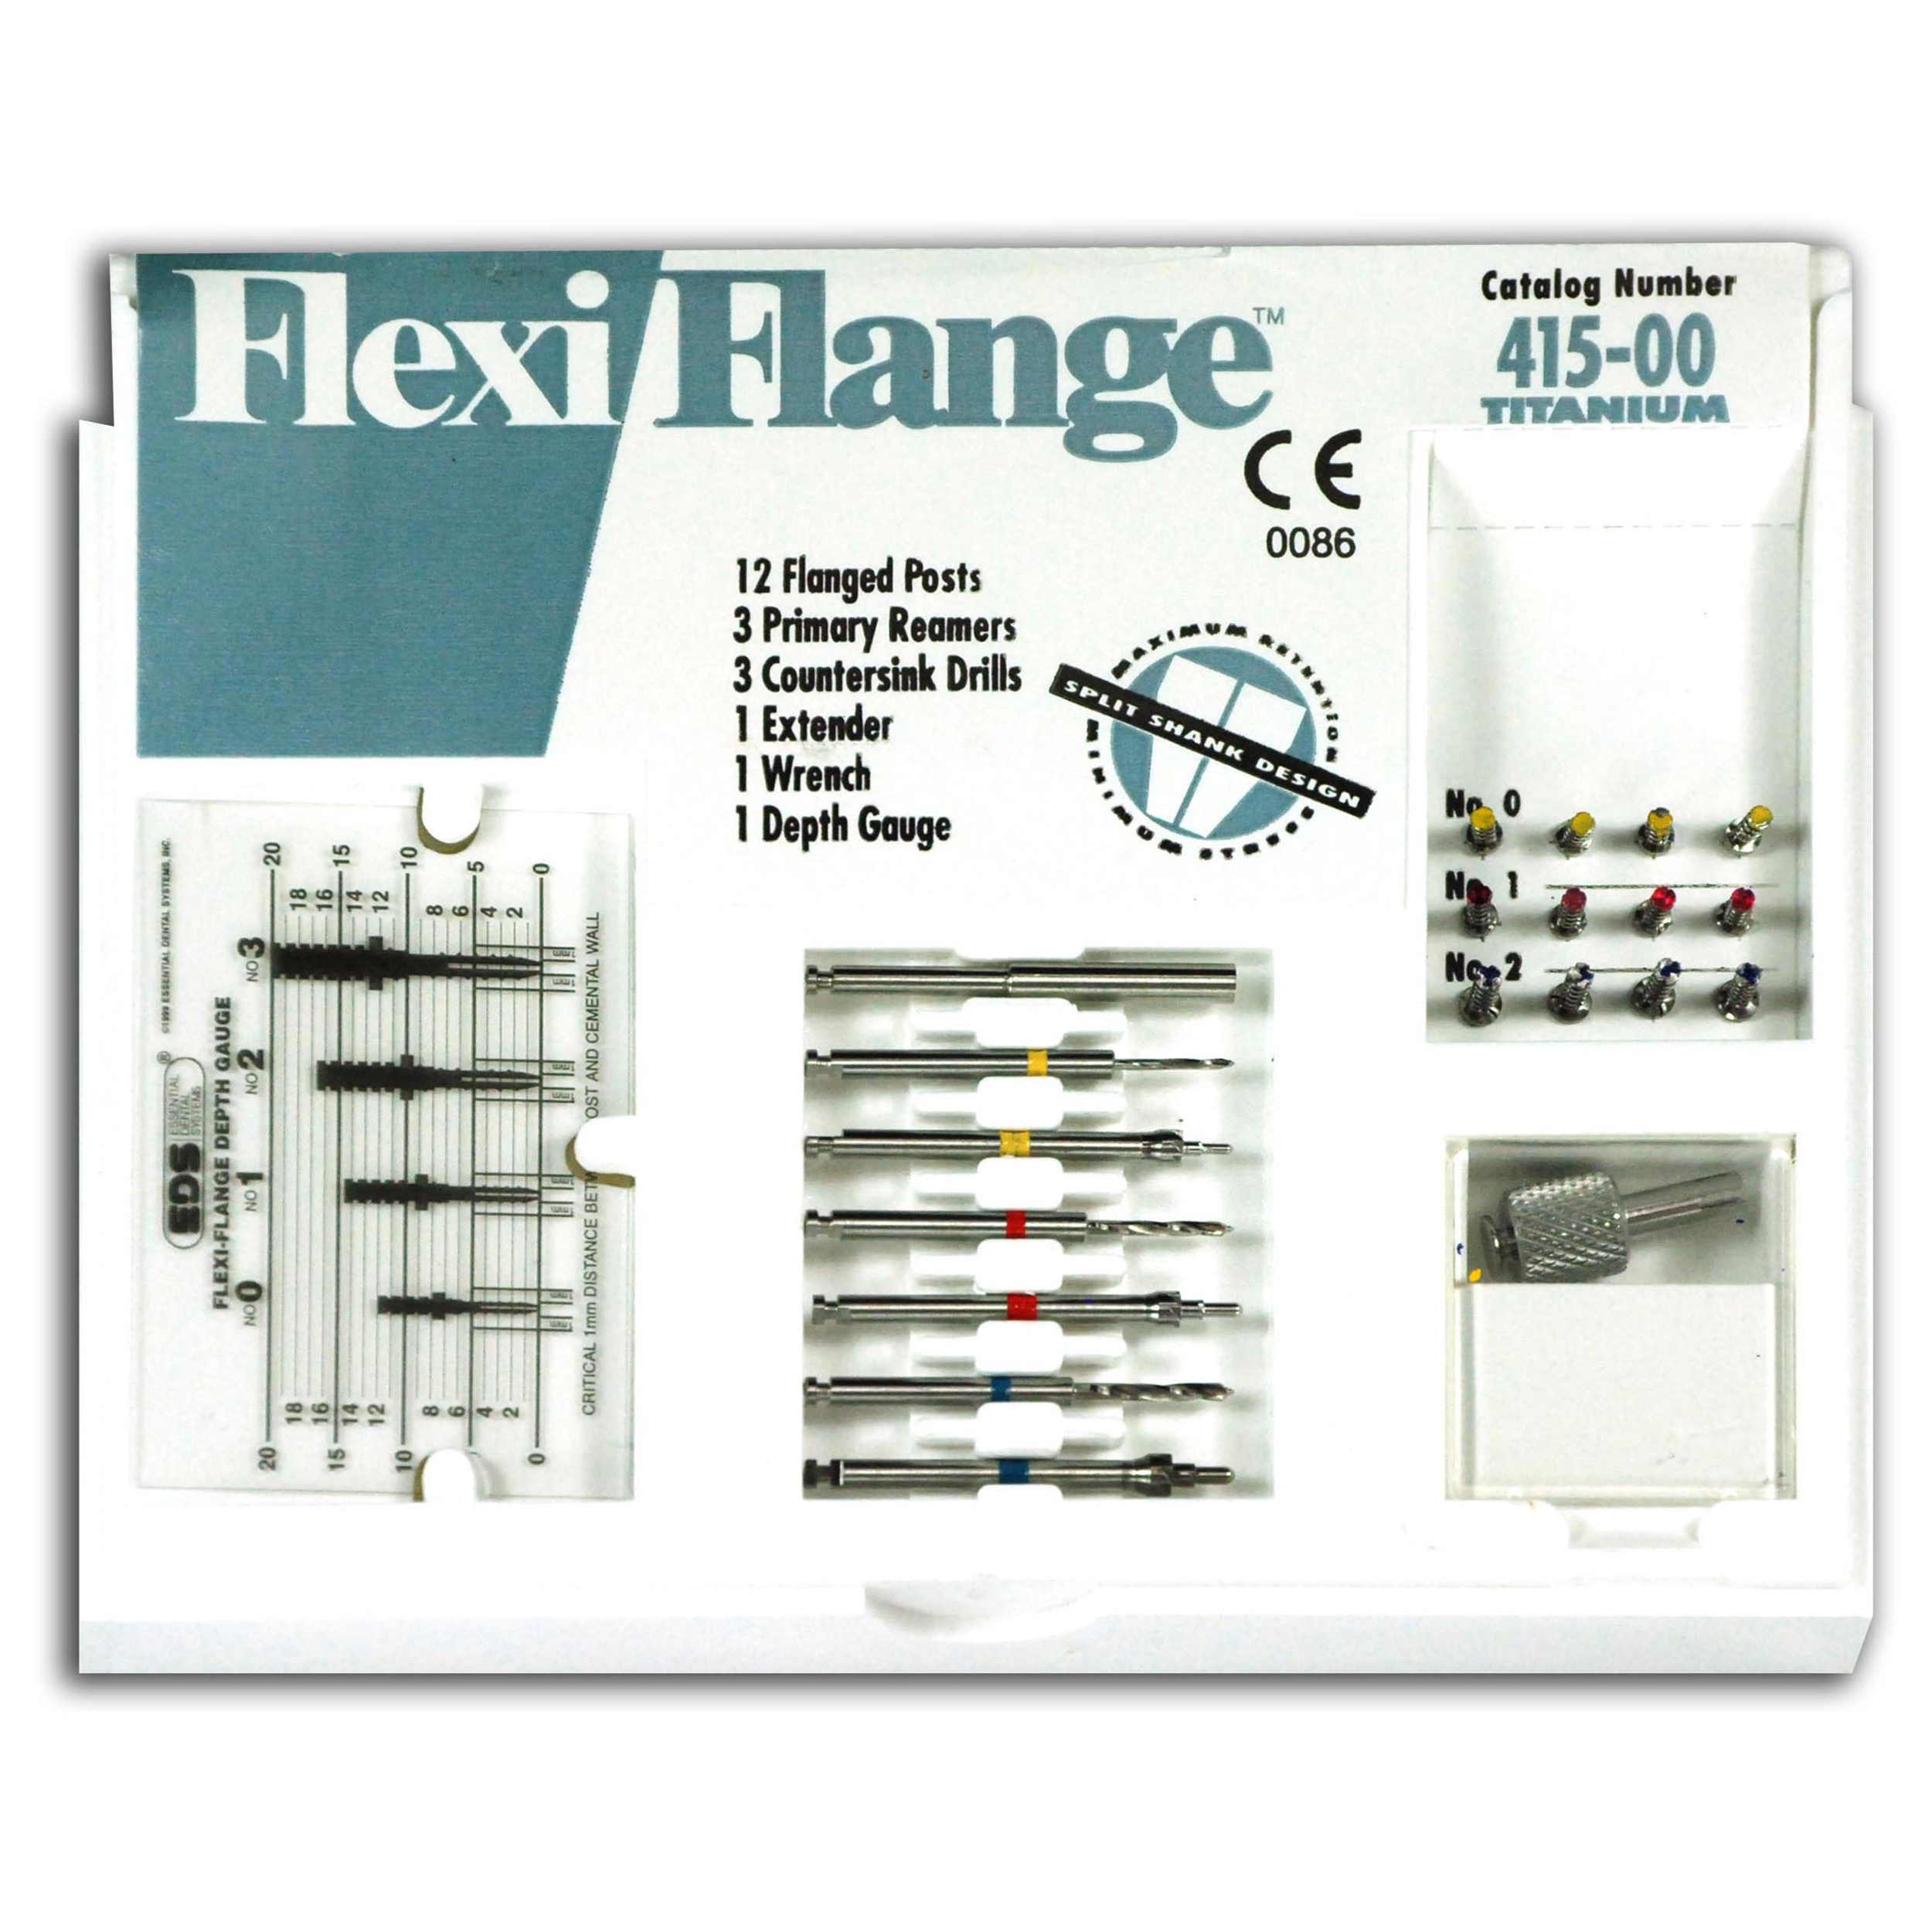 9530524 Flexi-Flange Titanium Intro Kit, 10/Pkg., 415-00